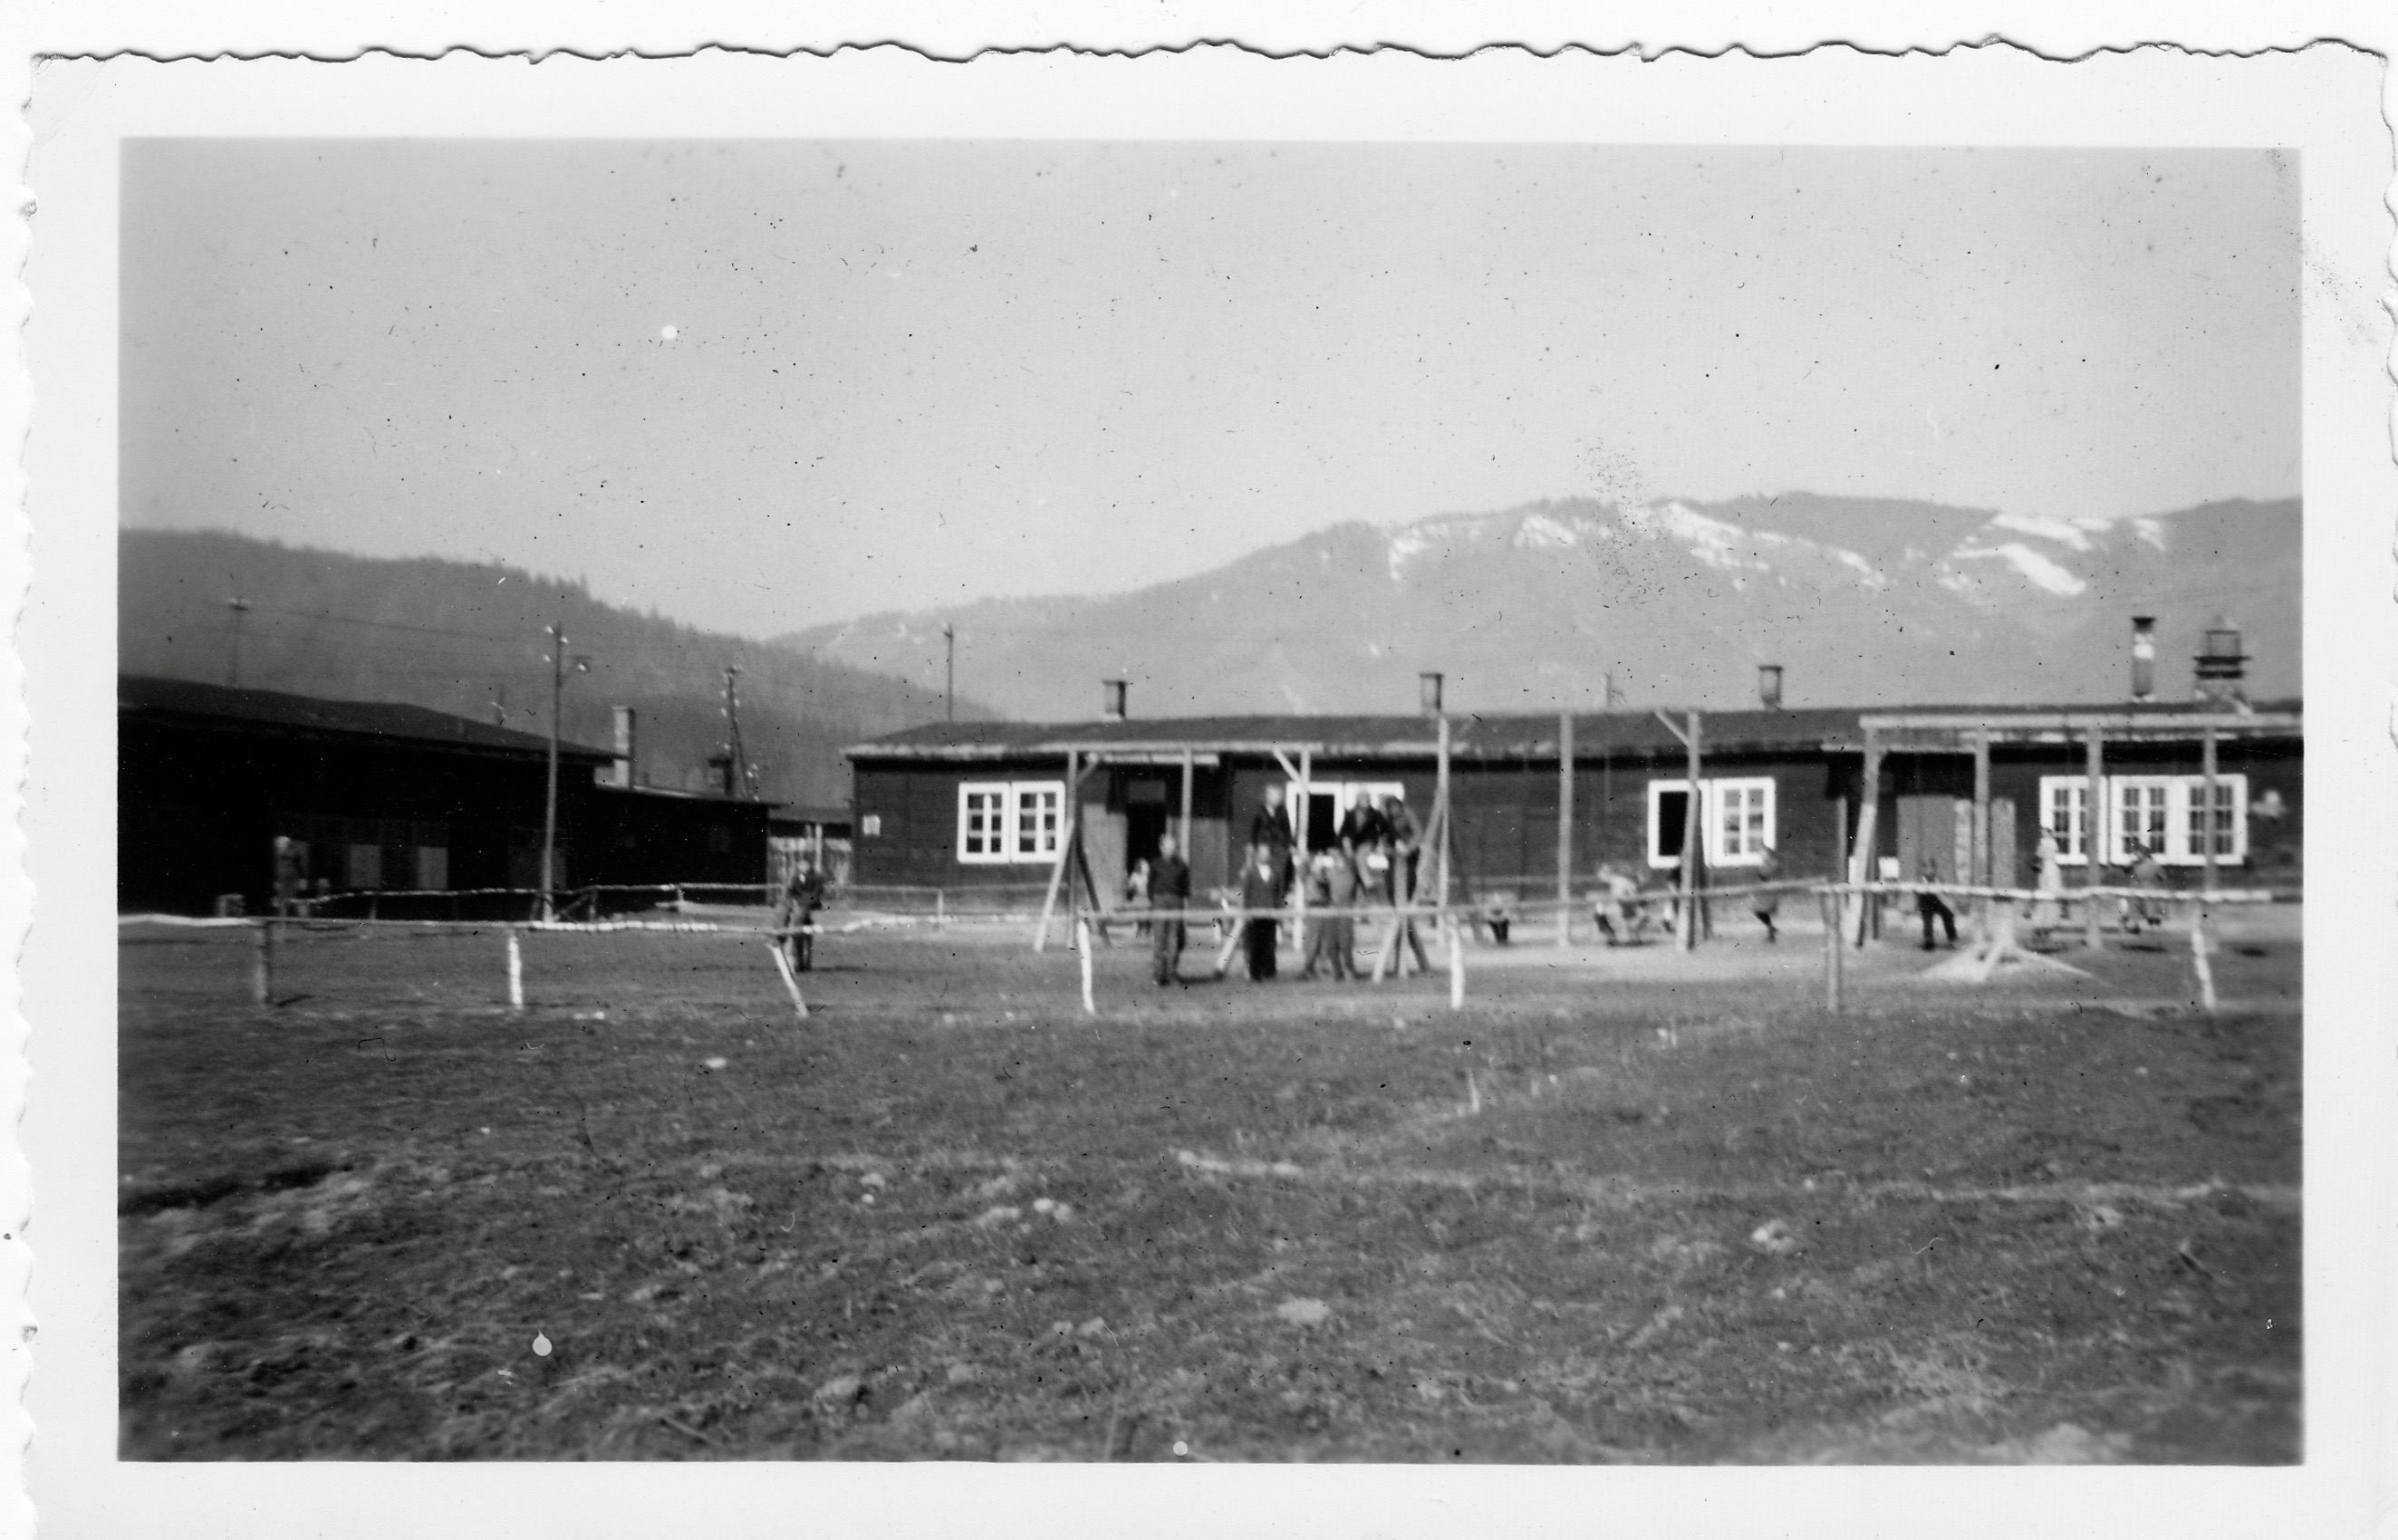 Kapfenberg Camp 7 Childrens playground and dining barracks 1949